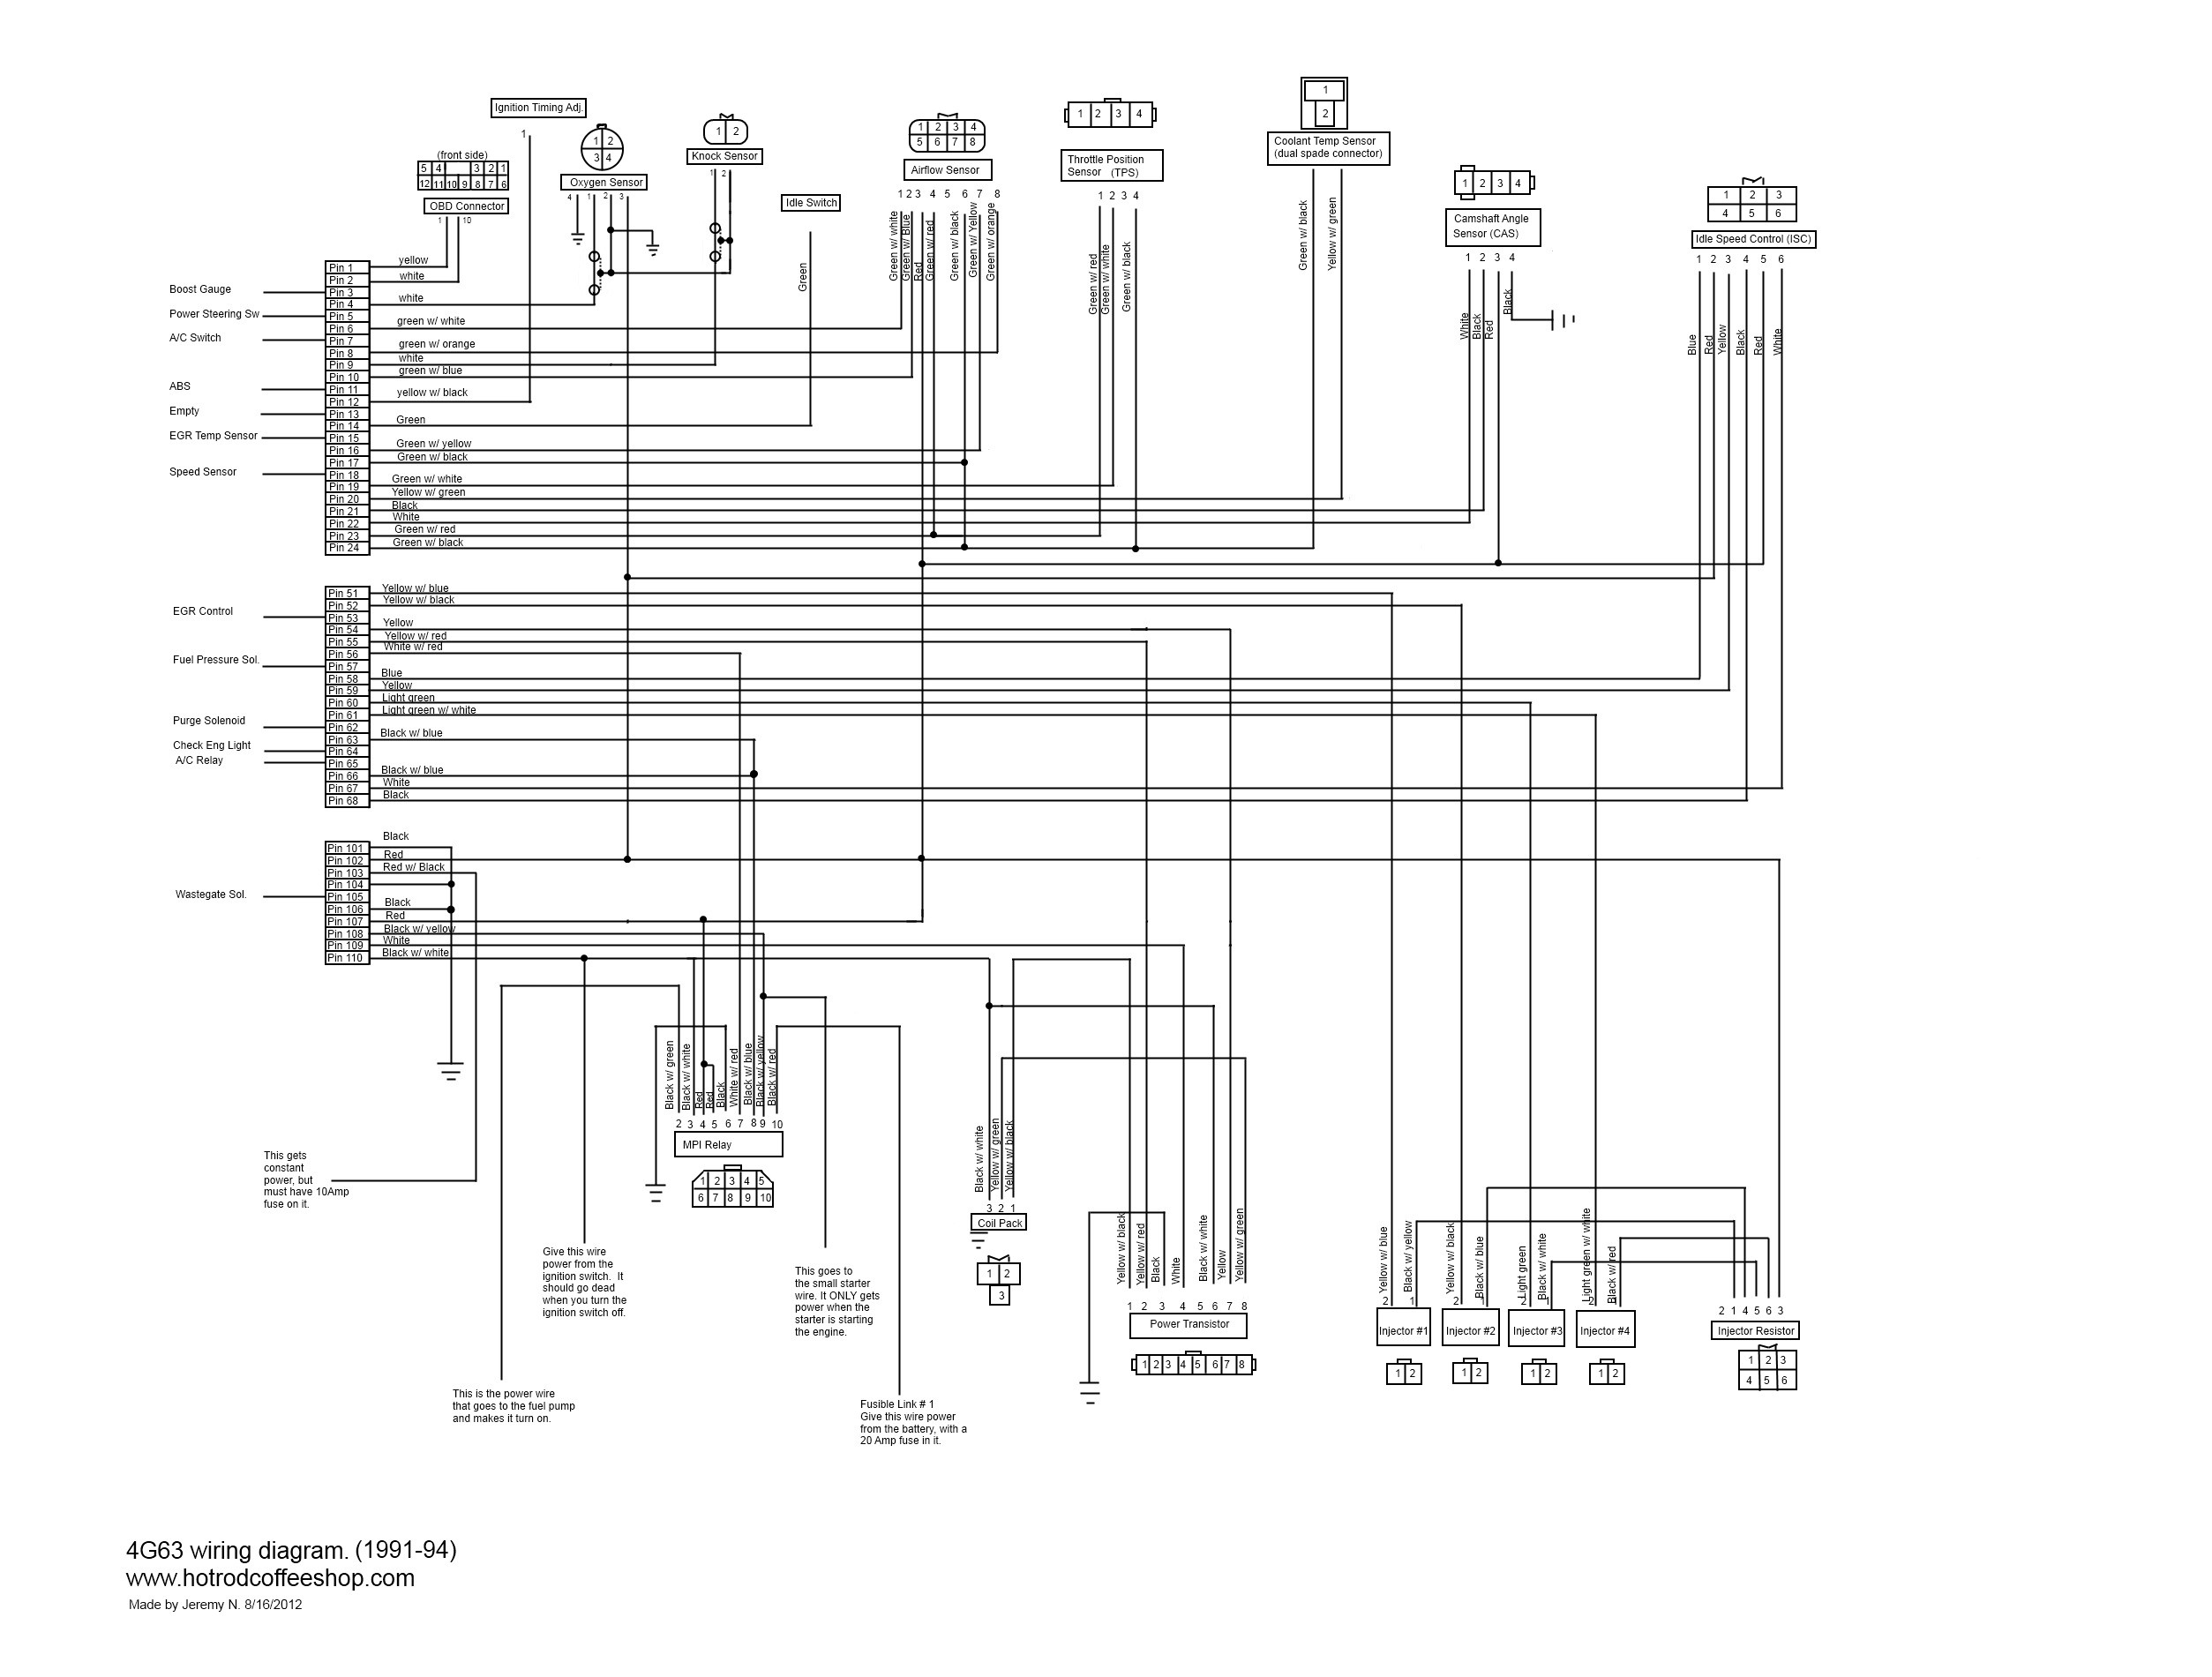 2001 Mitsubishi Galant Engine Diagram Detailed